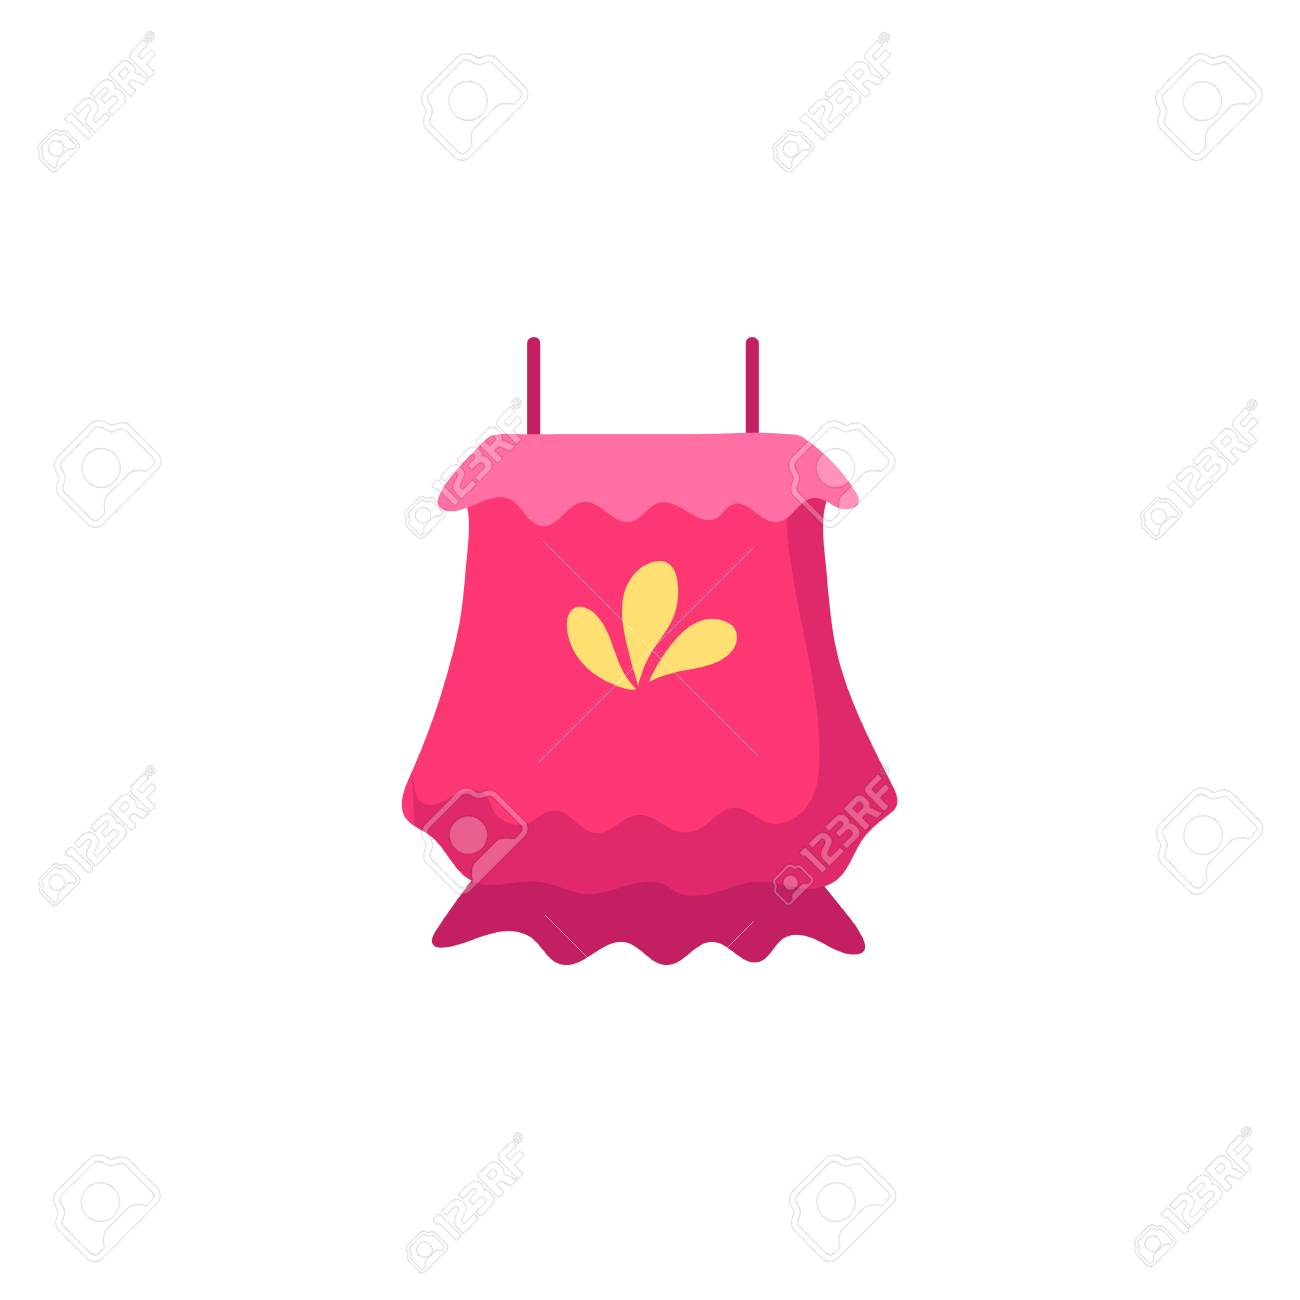 Pink colored sleeveless flounce summer top with spaghetti shoulder straps, flat cartoon vector illustration isolated on white background. Flat cartoon summer top with spaghetti shoulder straps - 92126776